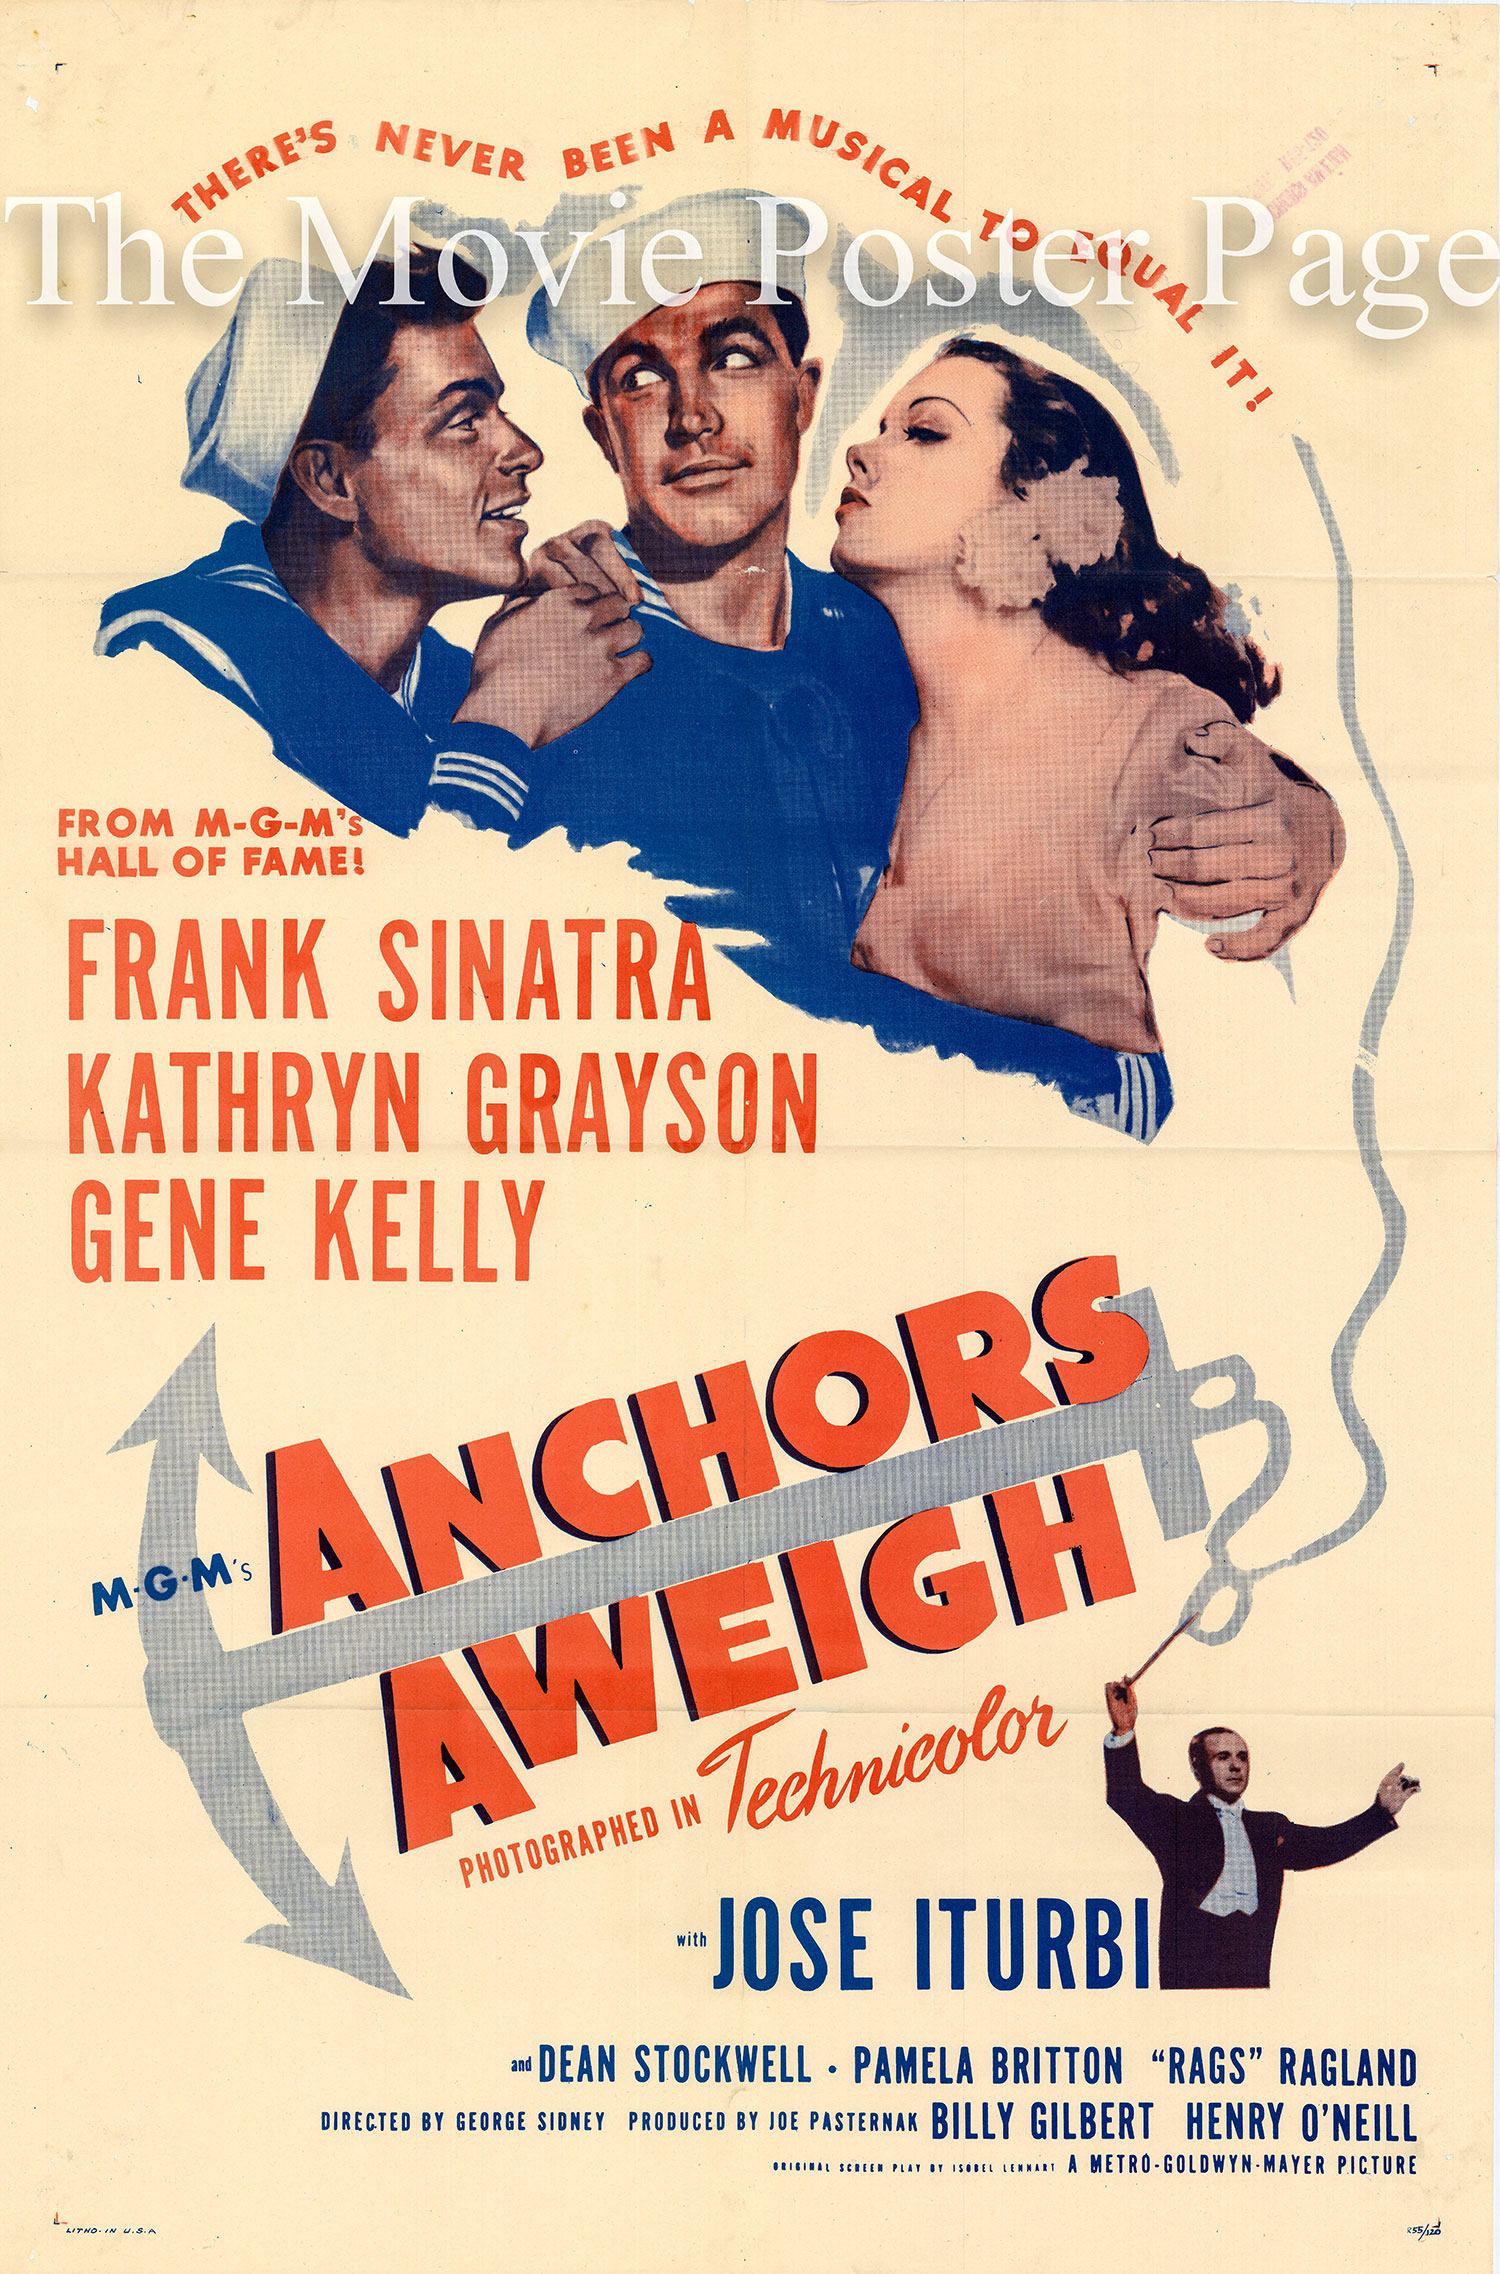 Pictured is a US promotional poster for a 1955 rerelease of the 1945 George Sidney film Anchors Aweigh starring Frank Sinatra and Gene Kelly.